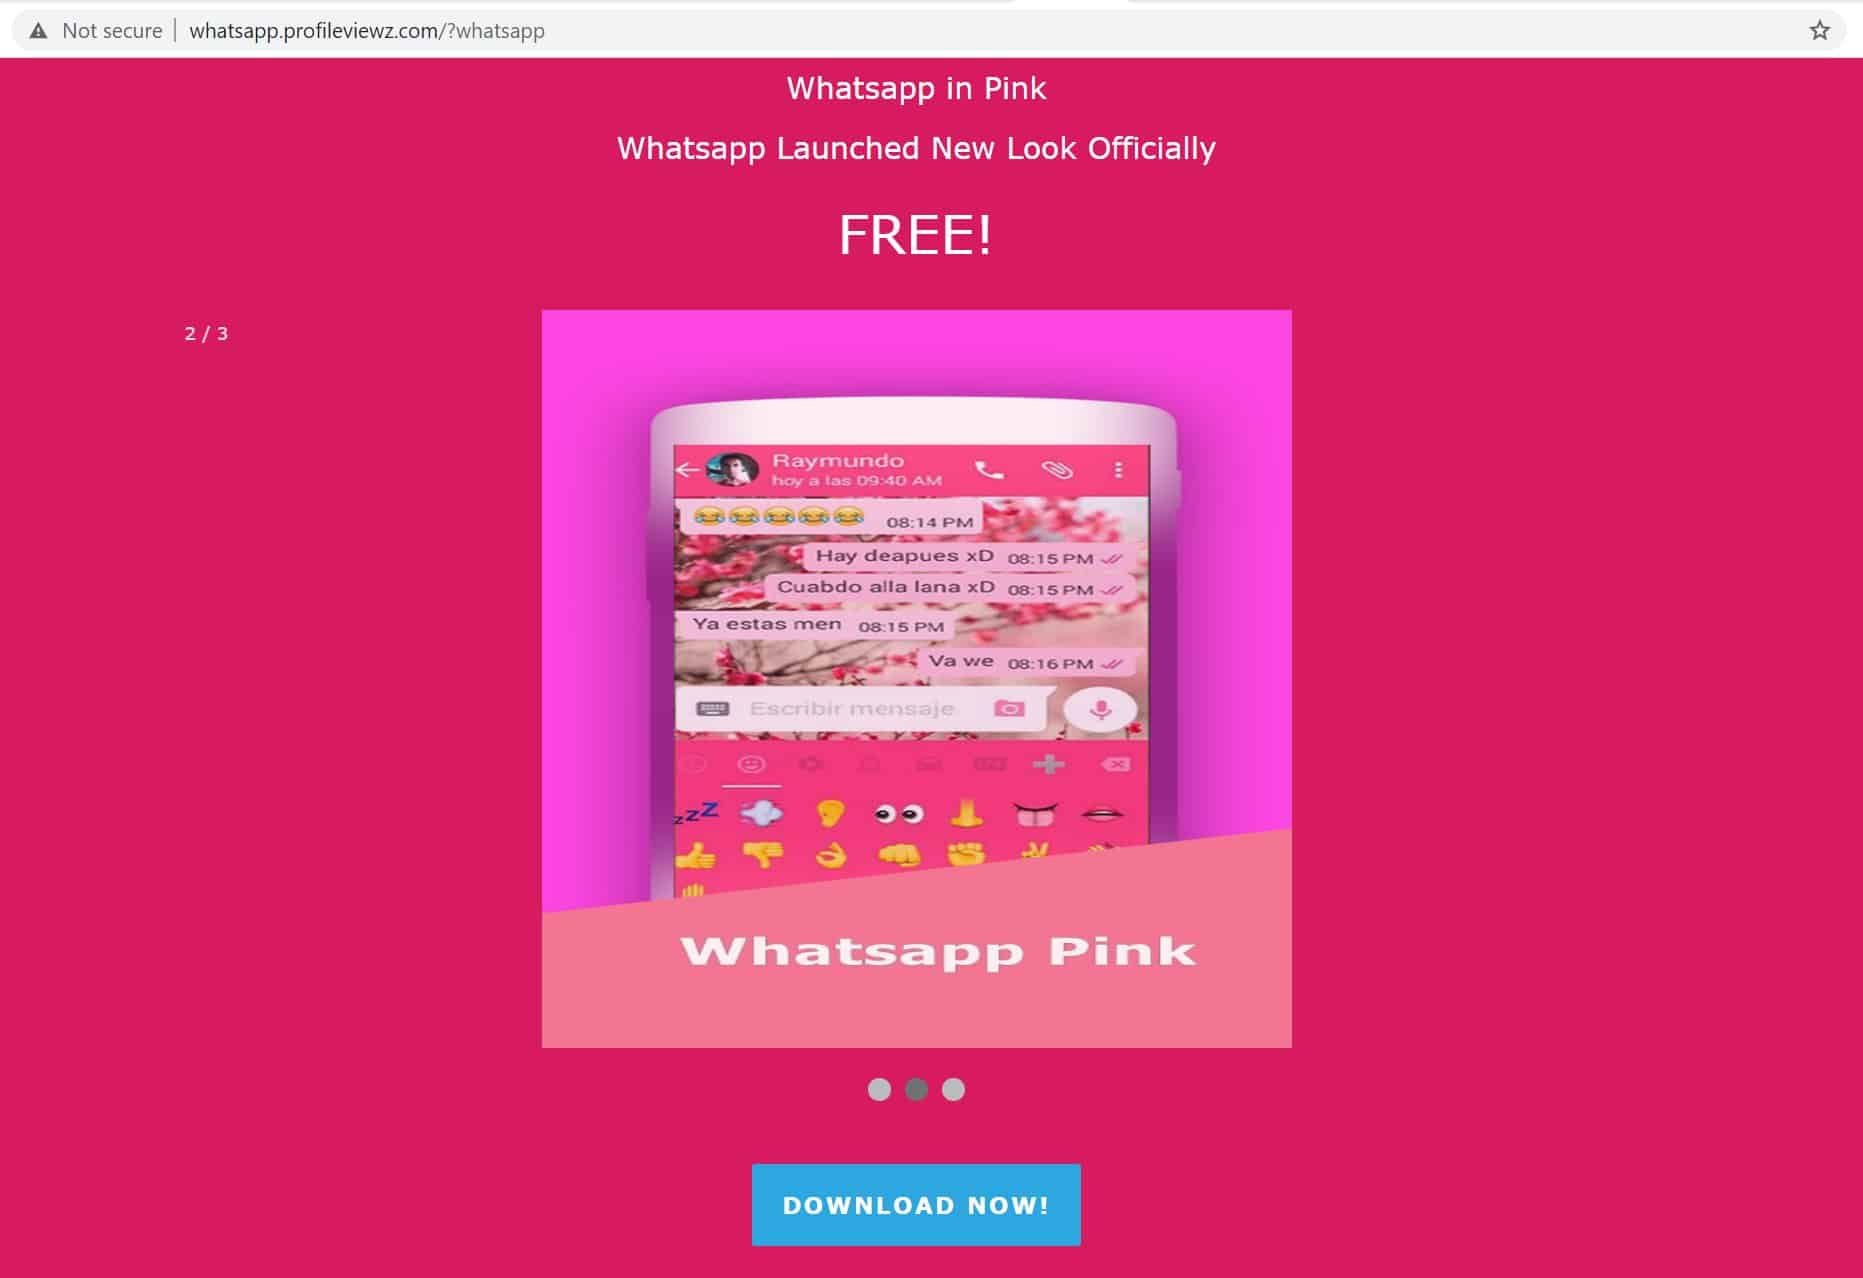 What is WhatsApp Pink?